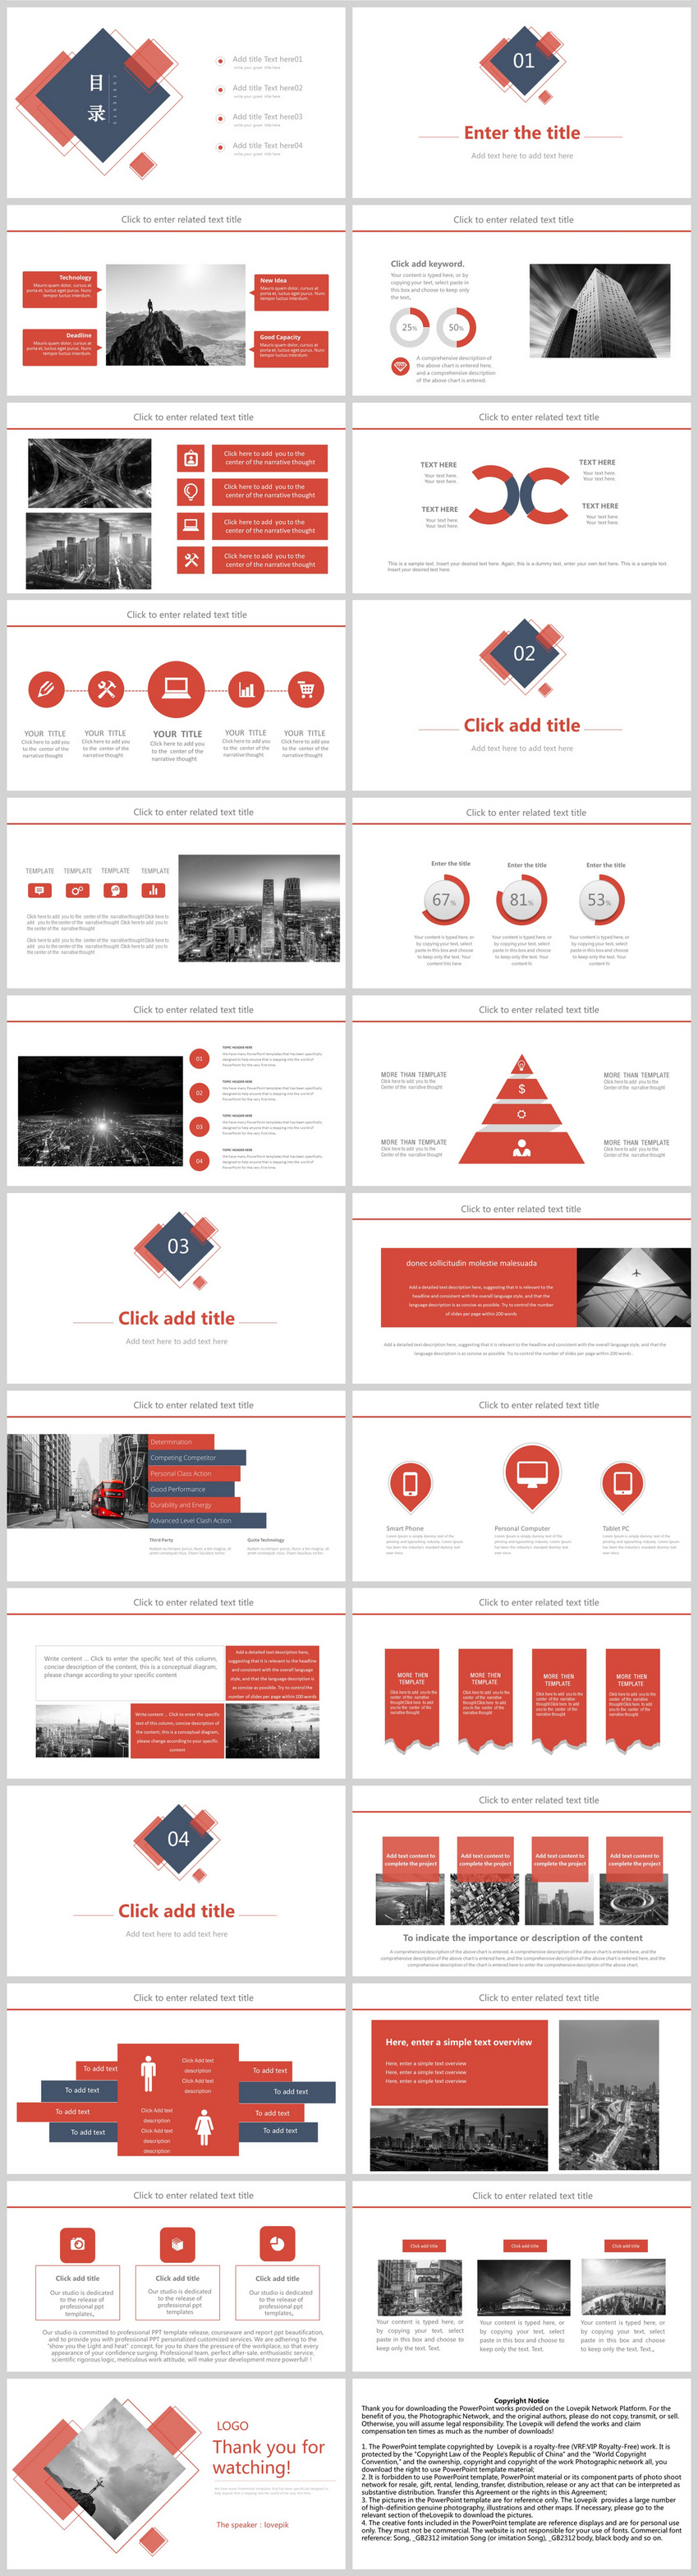 european design company brief ppt template design for brief business report of